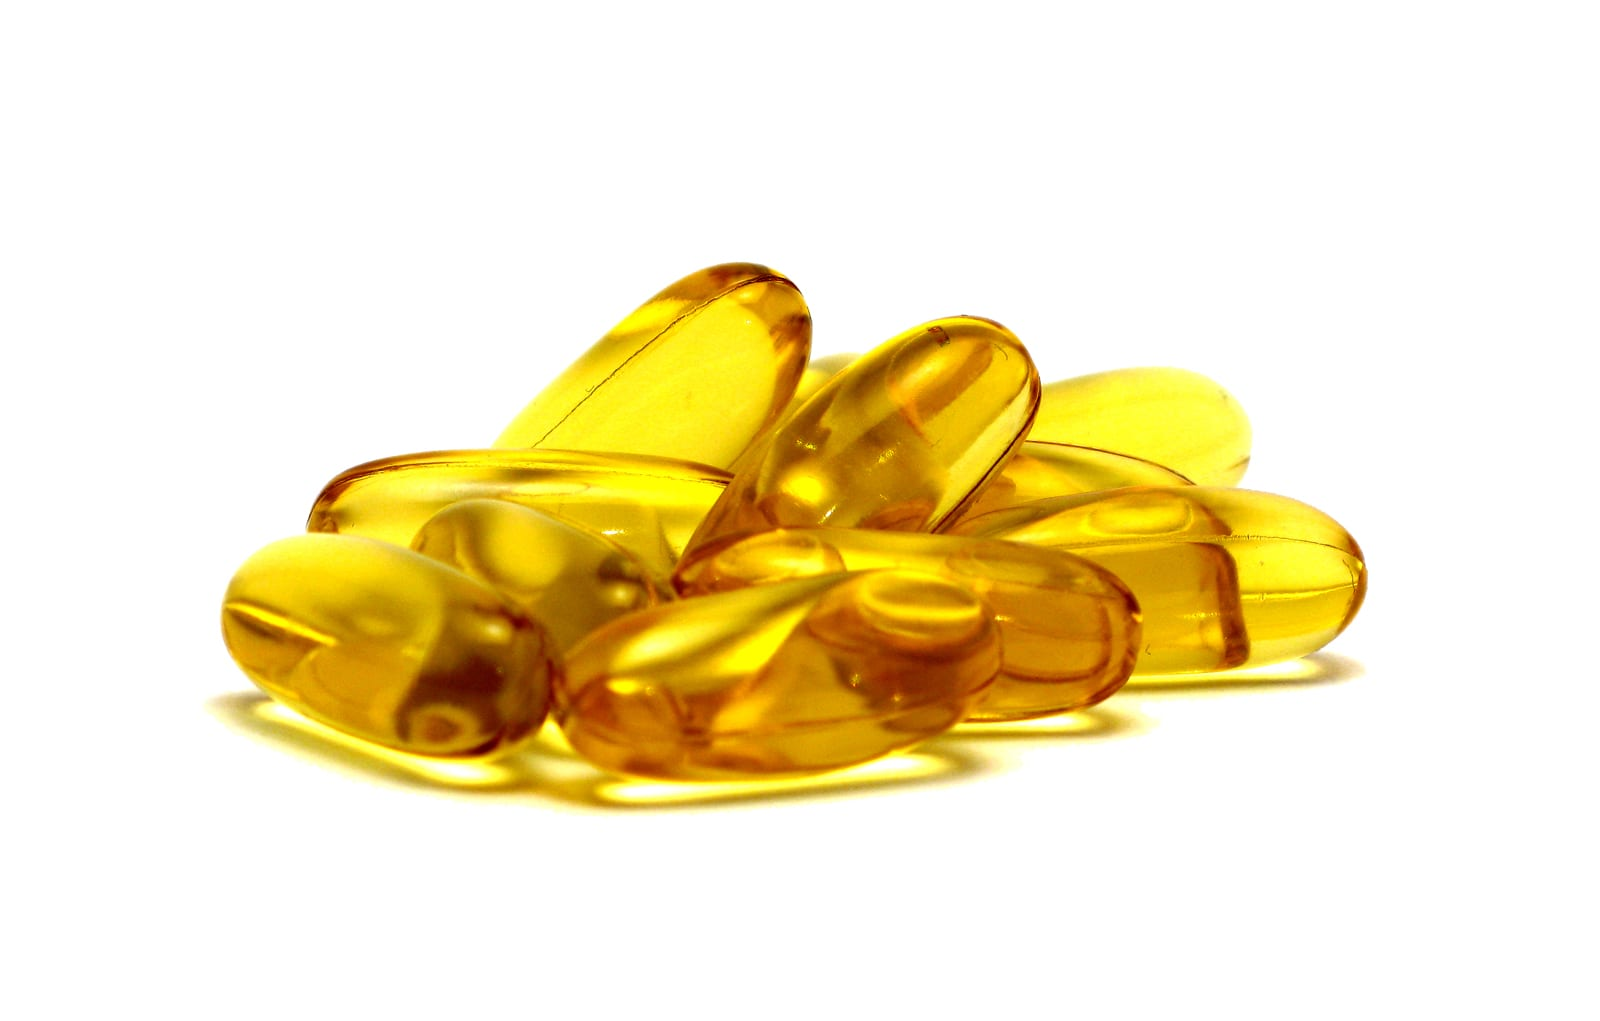 Does Fish Oil Cause Prostate Cancer?